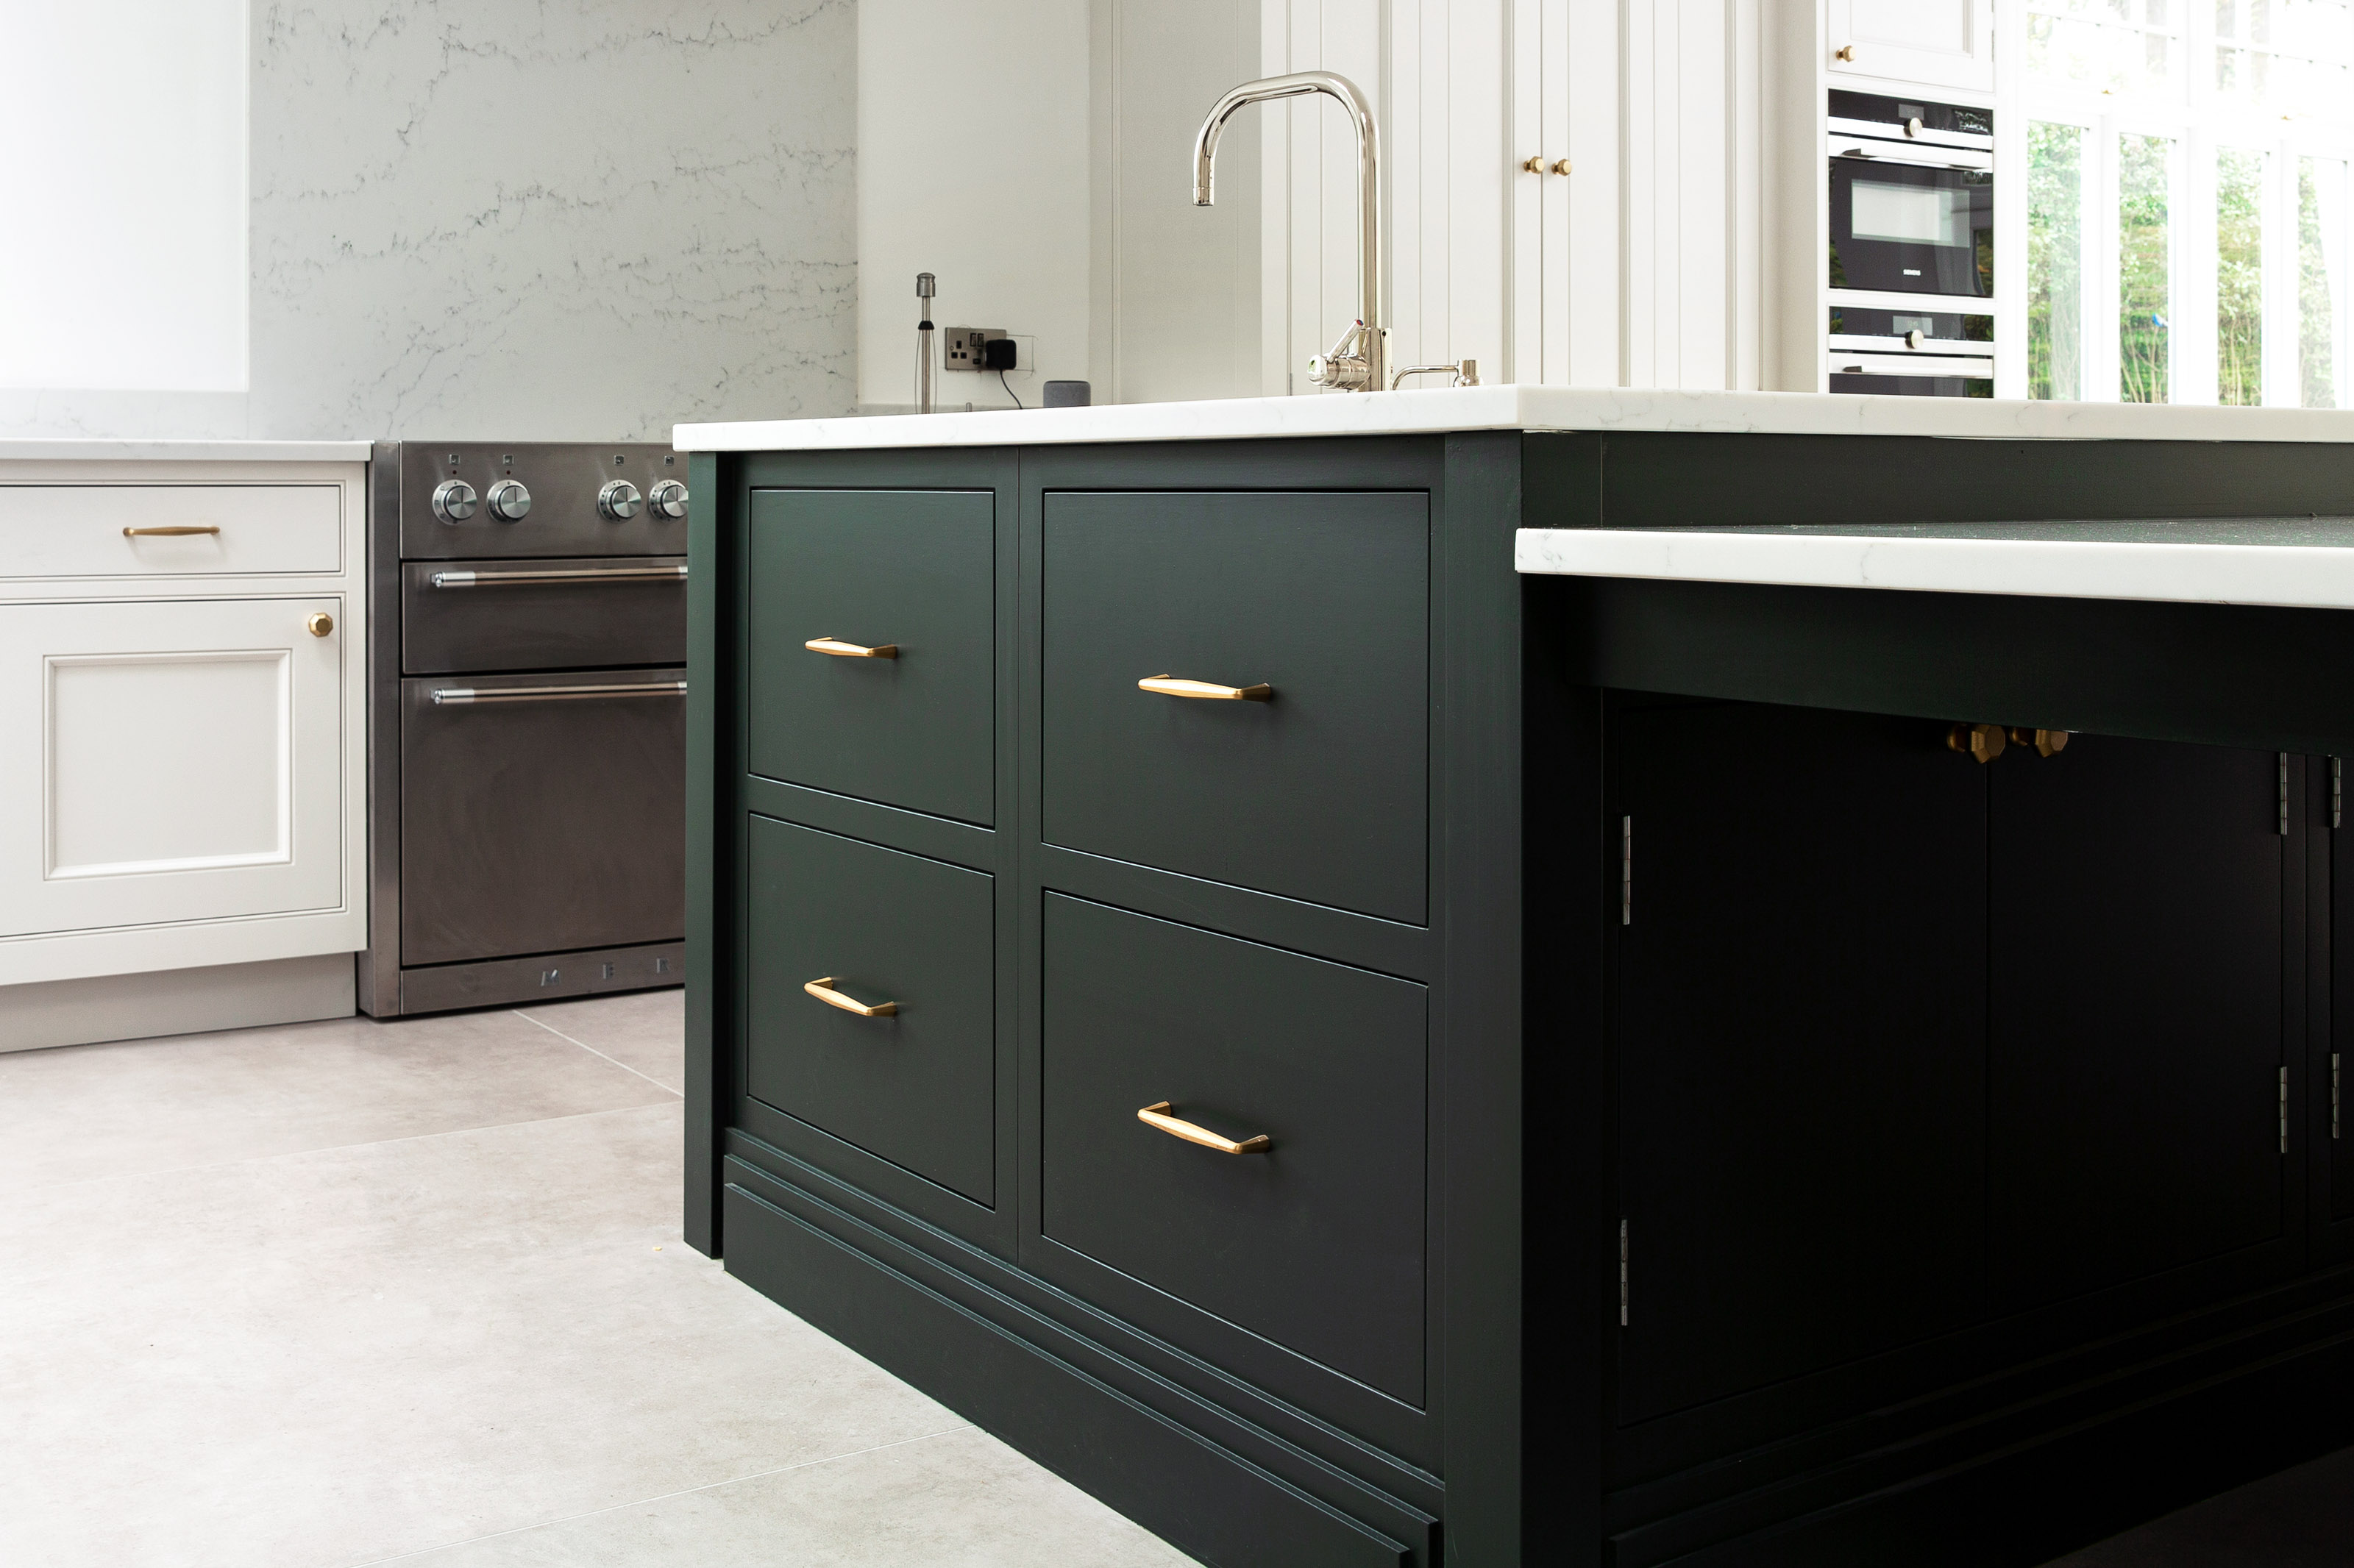 Watsons_Kitchens_Harrogate-11